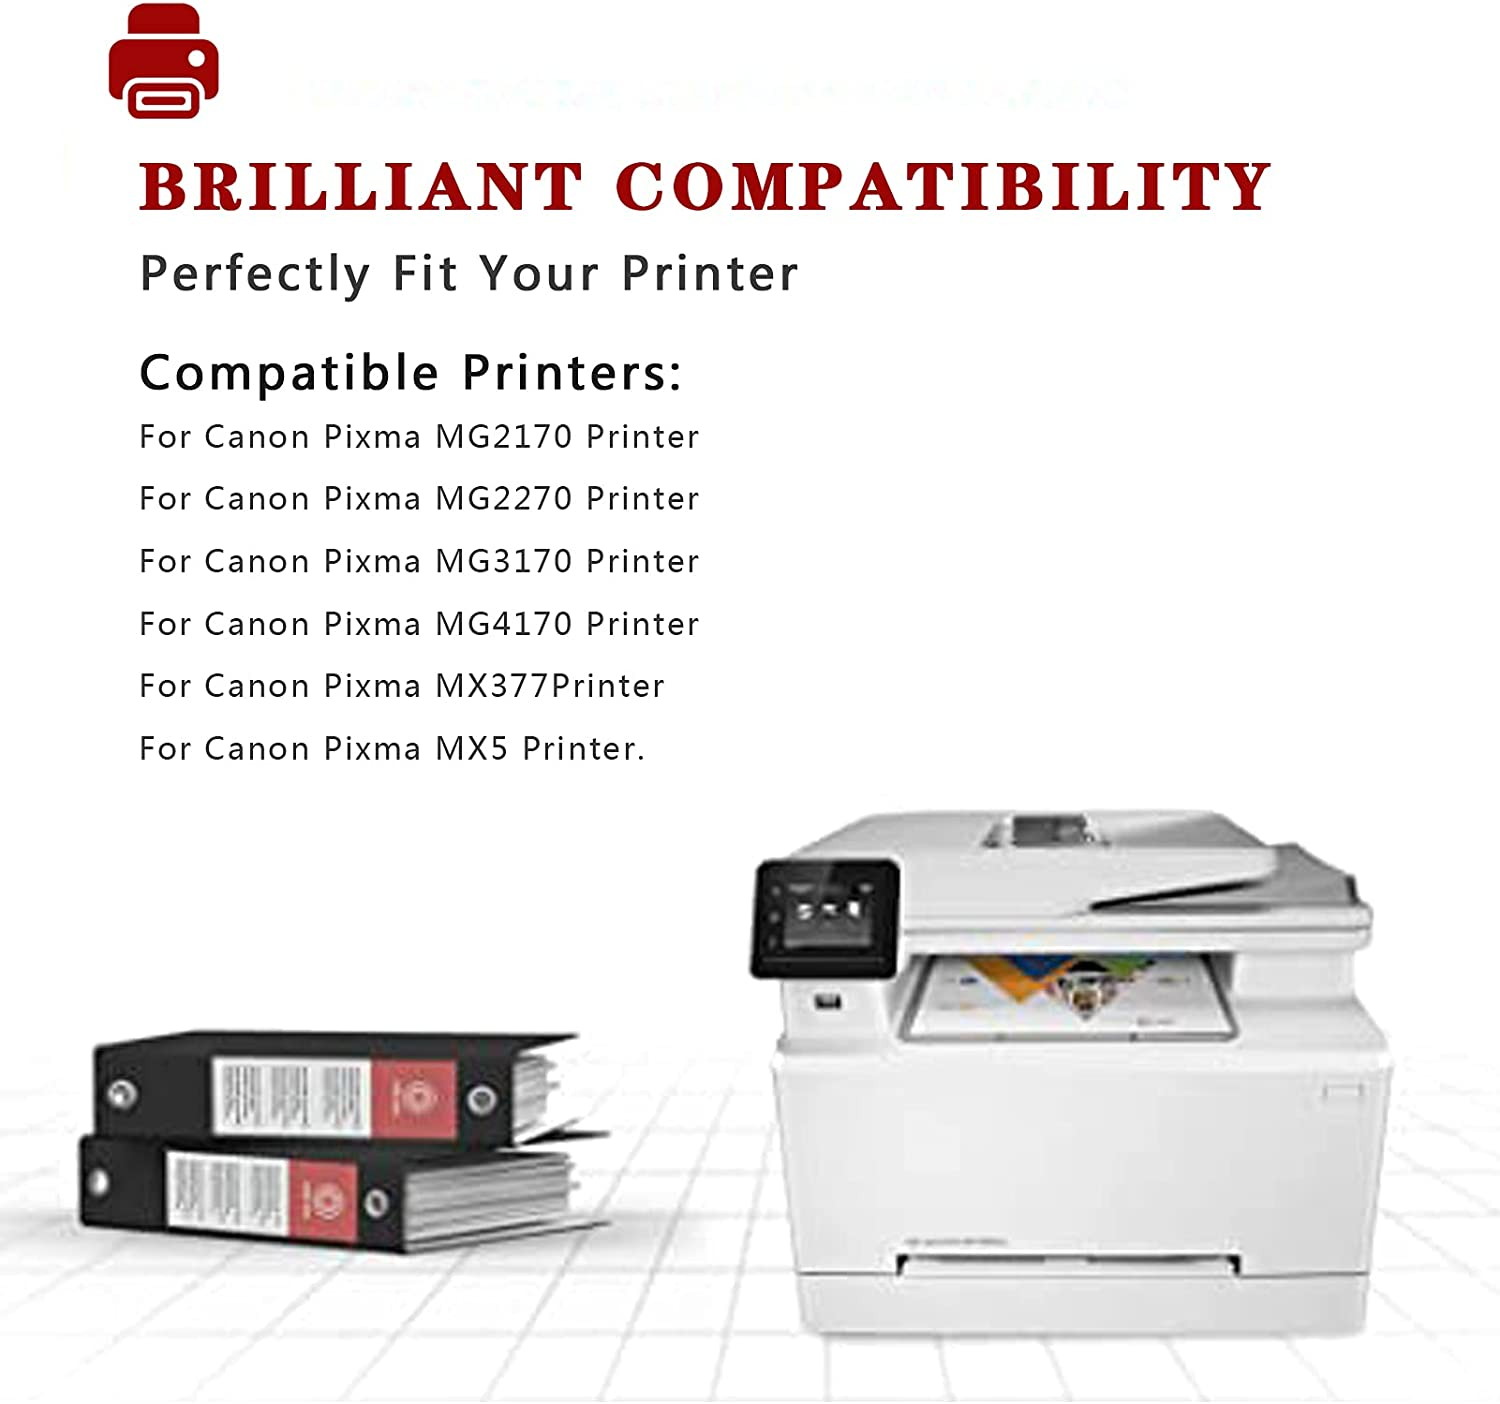 HYYH Compatible for Canon PG740 CL741 Toner Cartridge Replacement for Canon Pixma MG2170 MG2270 MG3170 MG4170 MX377 MX5 Printer Drum Unit Ink Toner, BK,C,Y,M Black